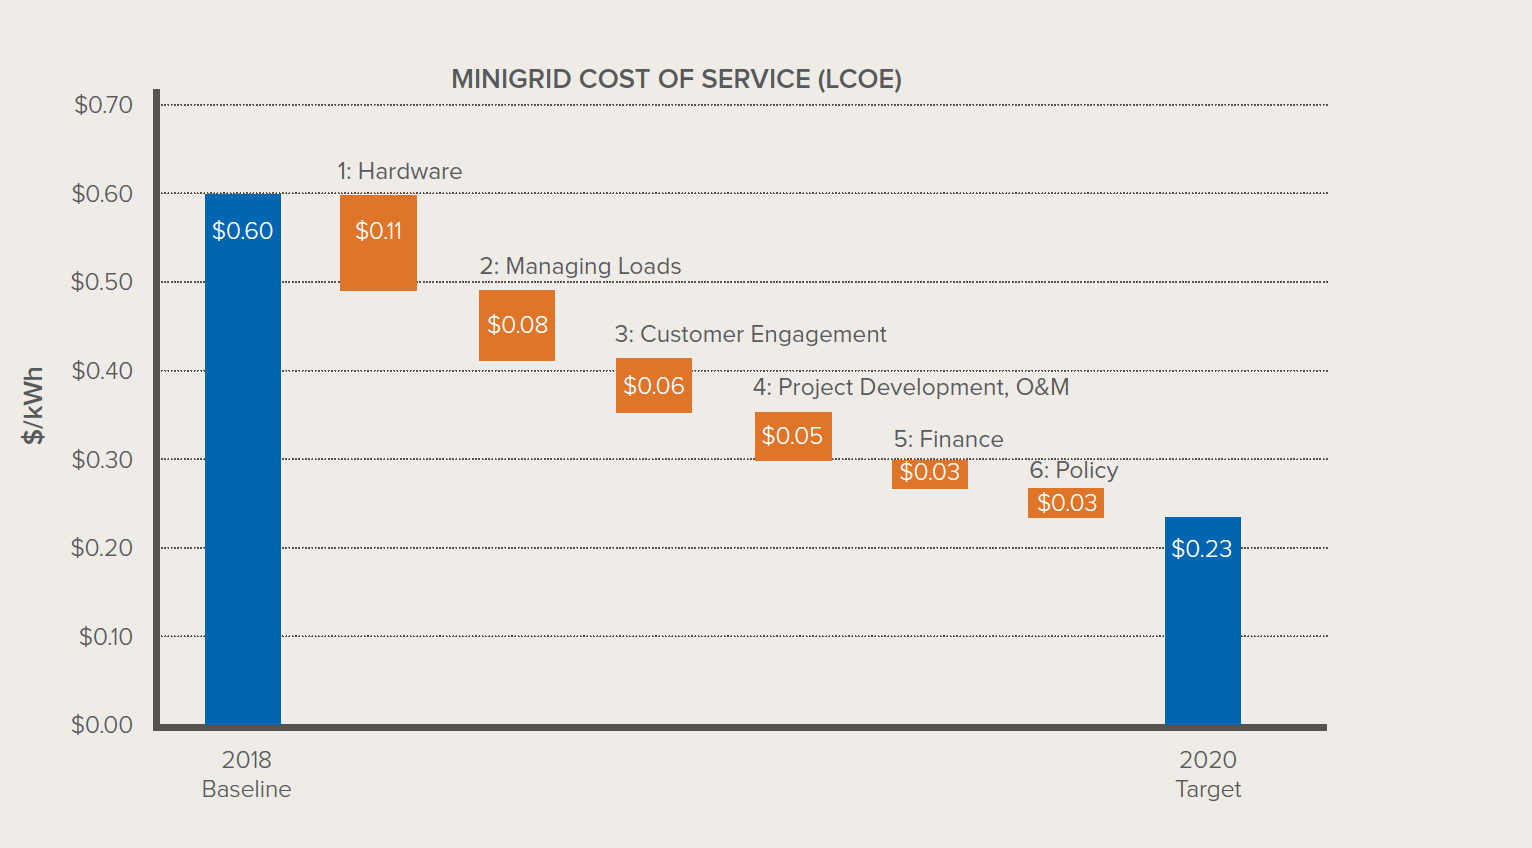 Minigrid Cost Can Be Reduced 60%, Estimated by RMI